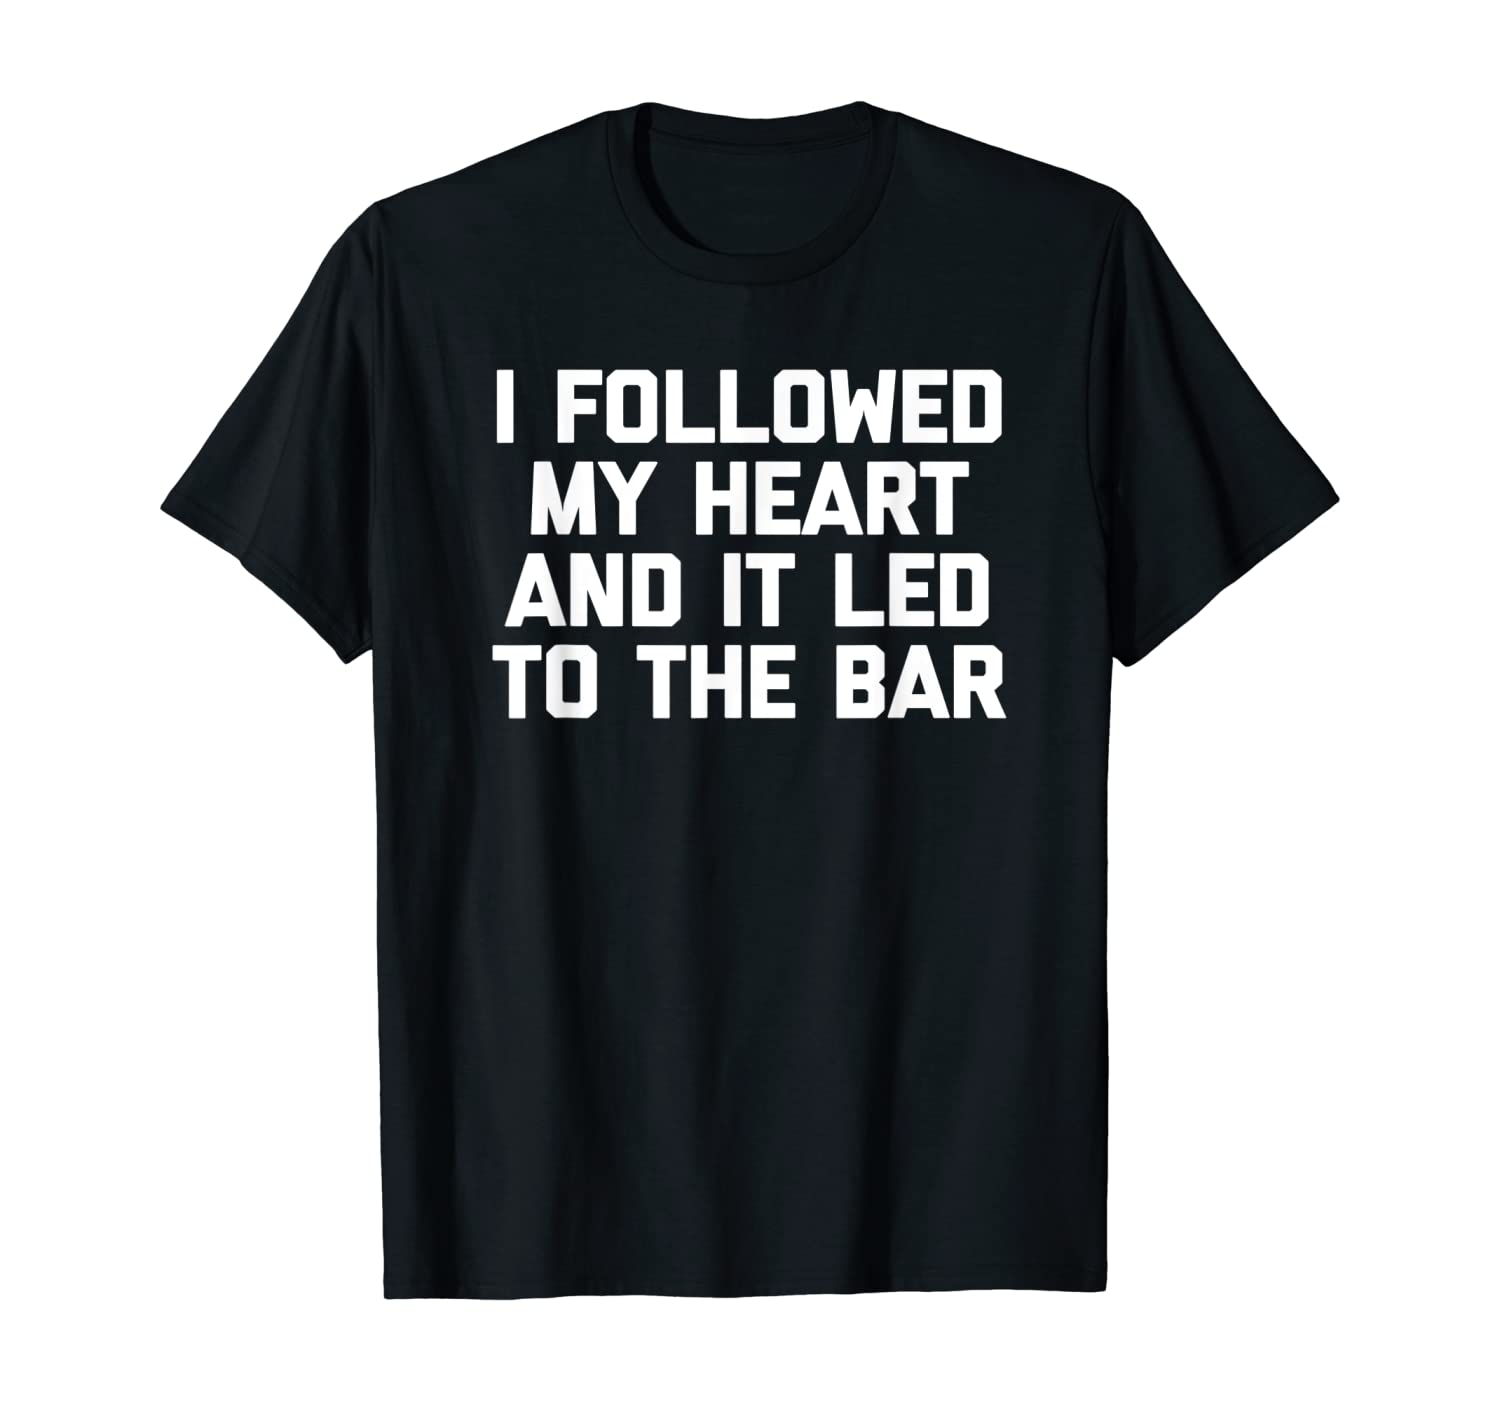 I Followed My Heart & It Led To The Bar T-Shirt funny saying T-Shirt